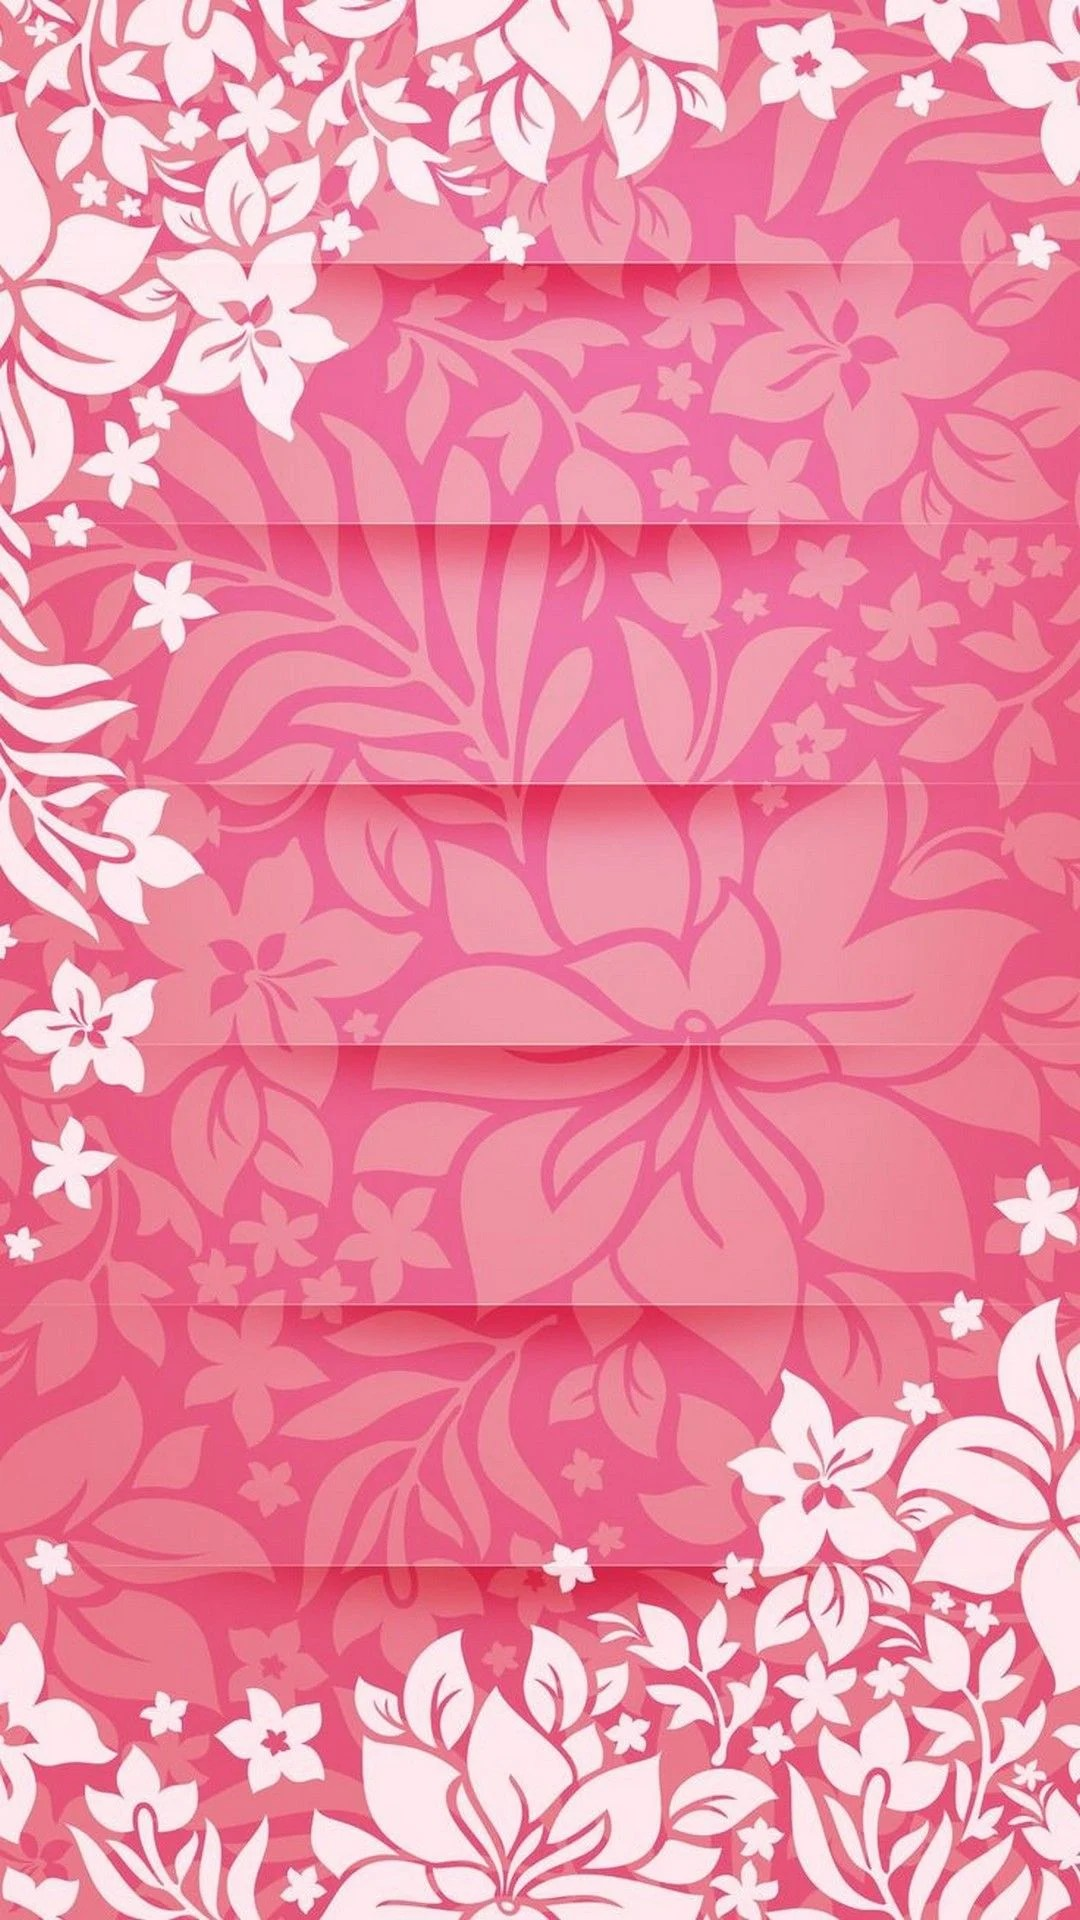 Cute Girly Wallpapers - Top Free Cute Girly Backgrounds ...